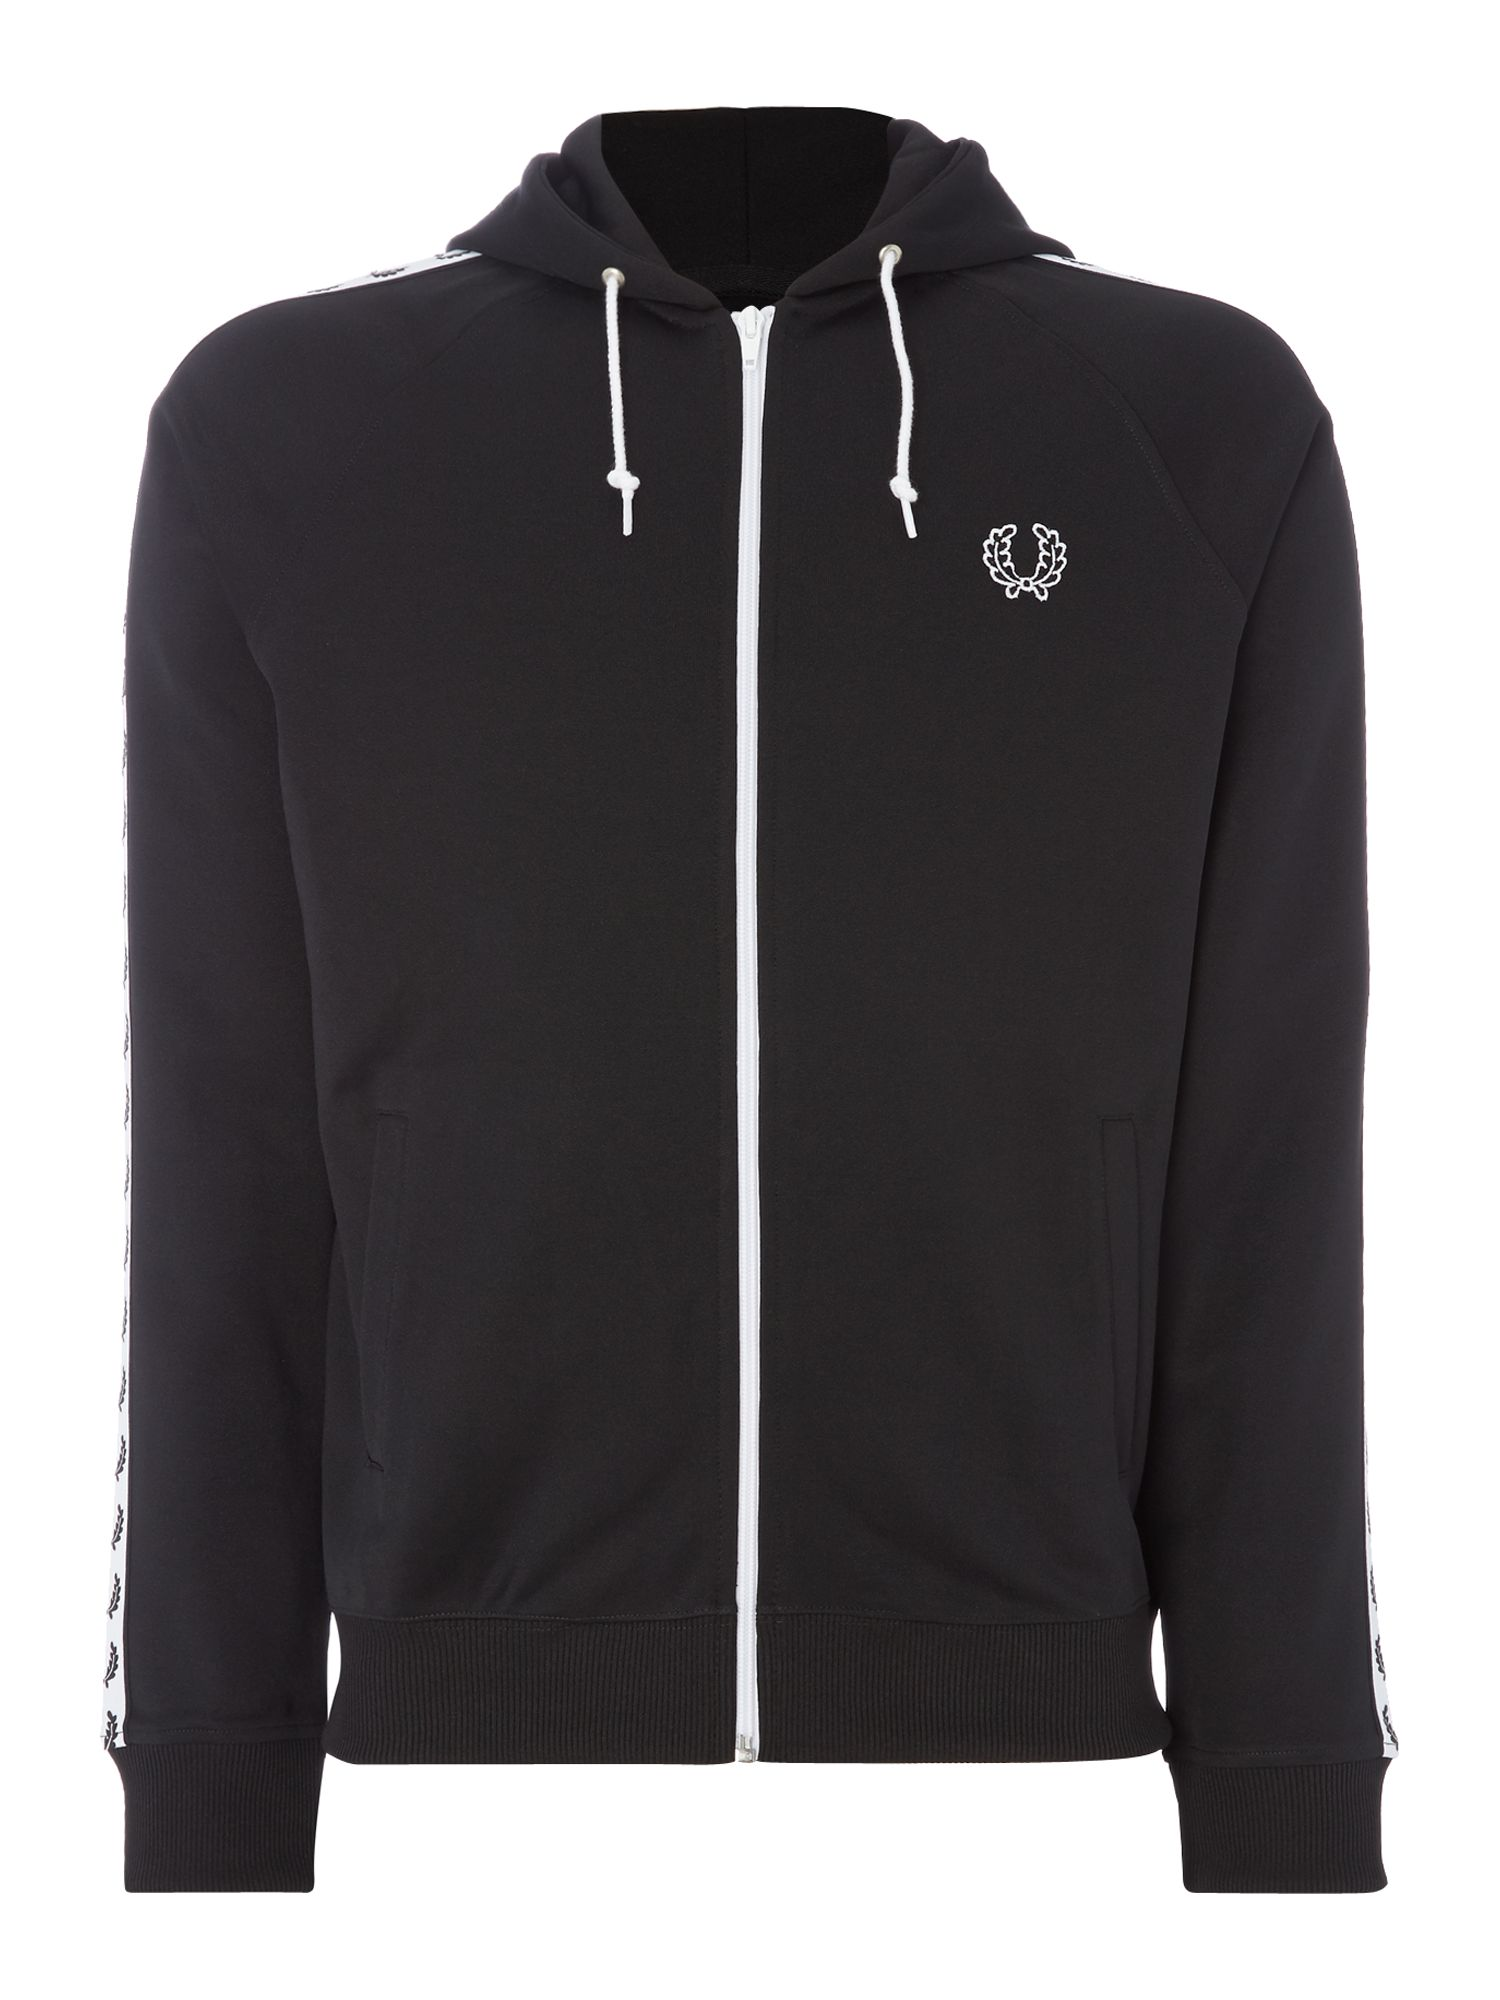 Mens Fred Perry Taped hooded track jacket Black